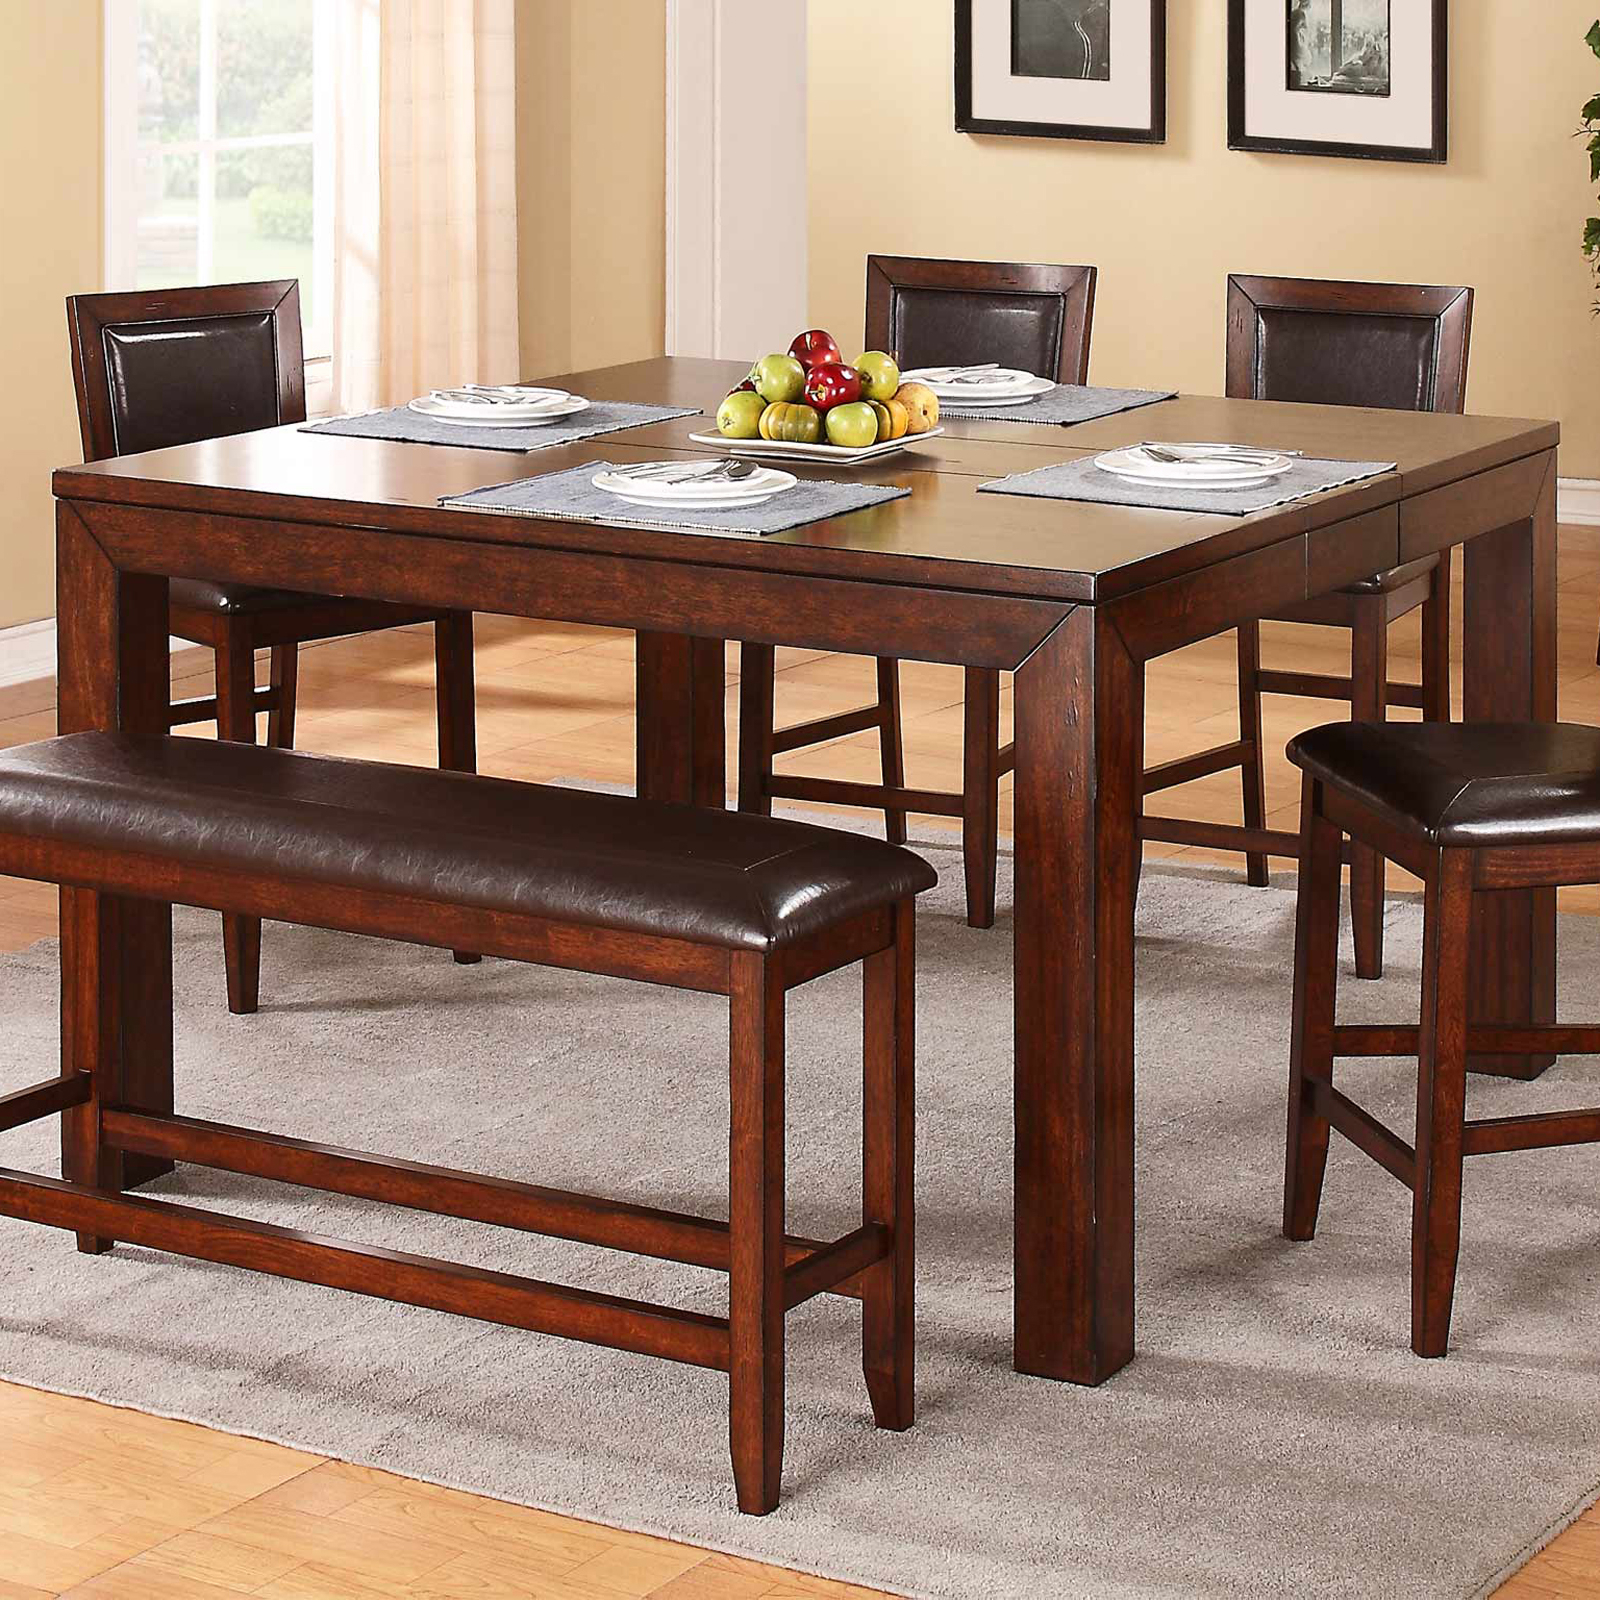 Winners Only Fallbrook Counter Height Dining Table With 12 Regarding Most Recent Warnock Butterfly Leaf Trestle Dining Tables (View 2 of 15)